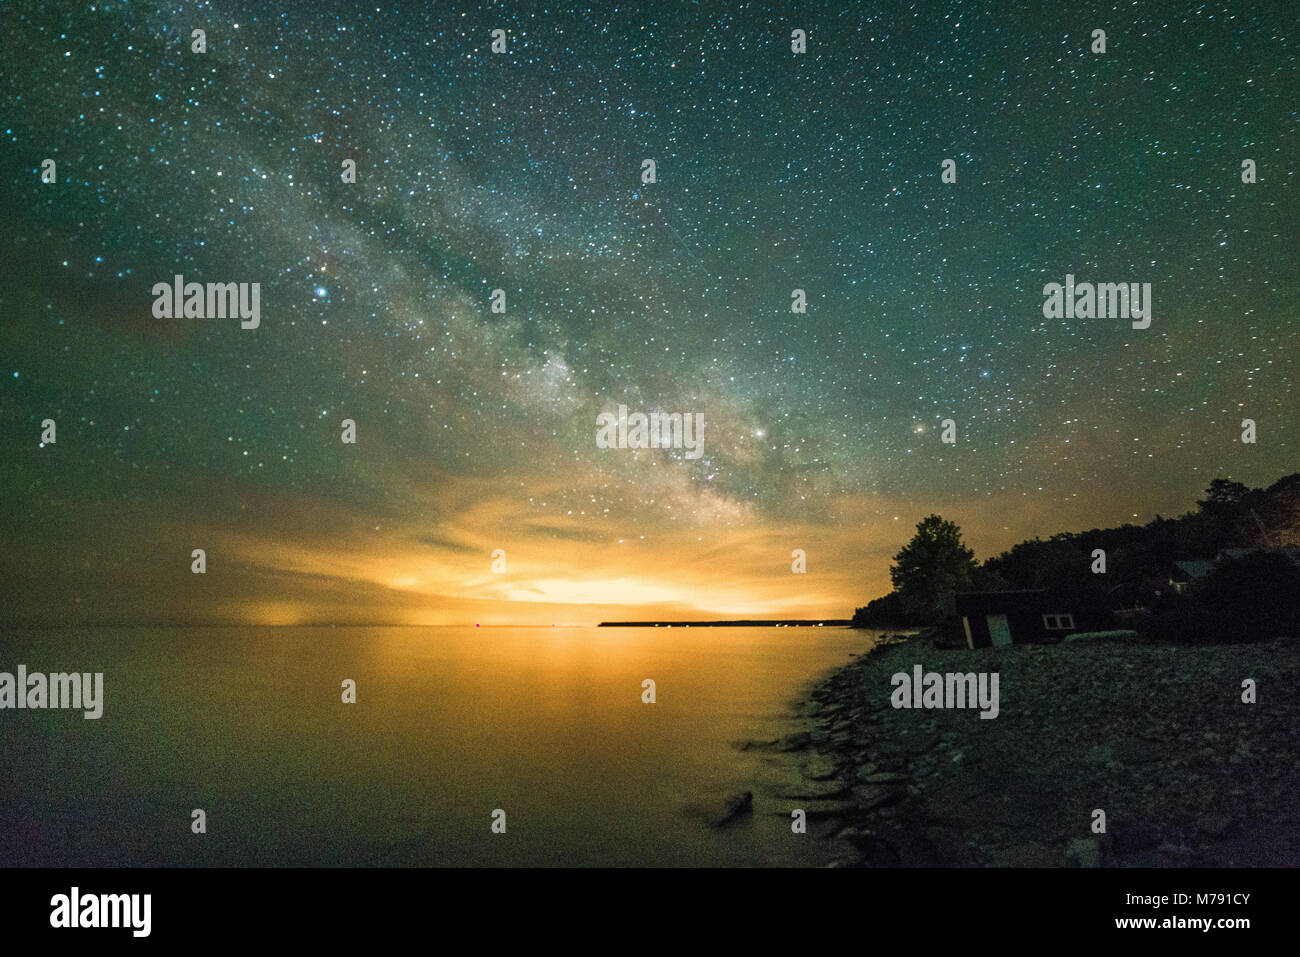 Milky Way and stars over the lake (Georgian Bay part of Lake huron) showing shoreline and cliffs in the summer - Stock Image